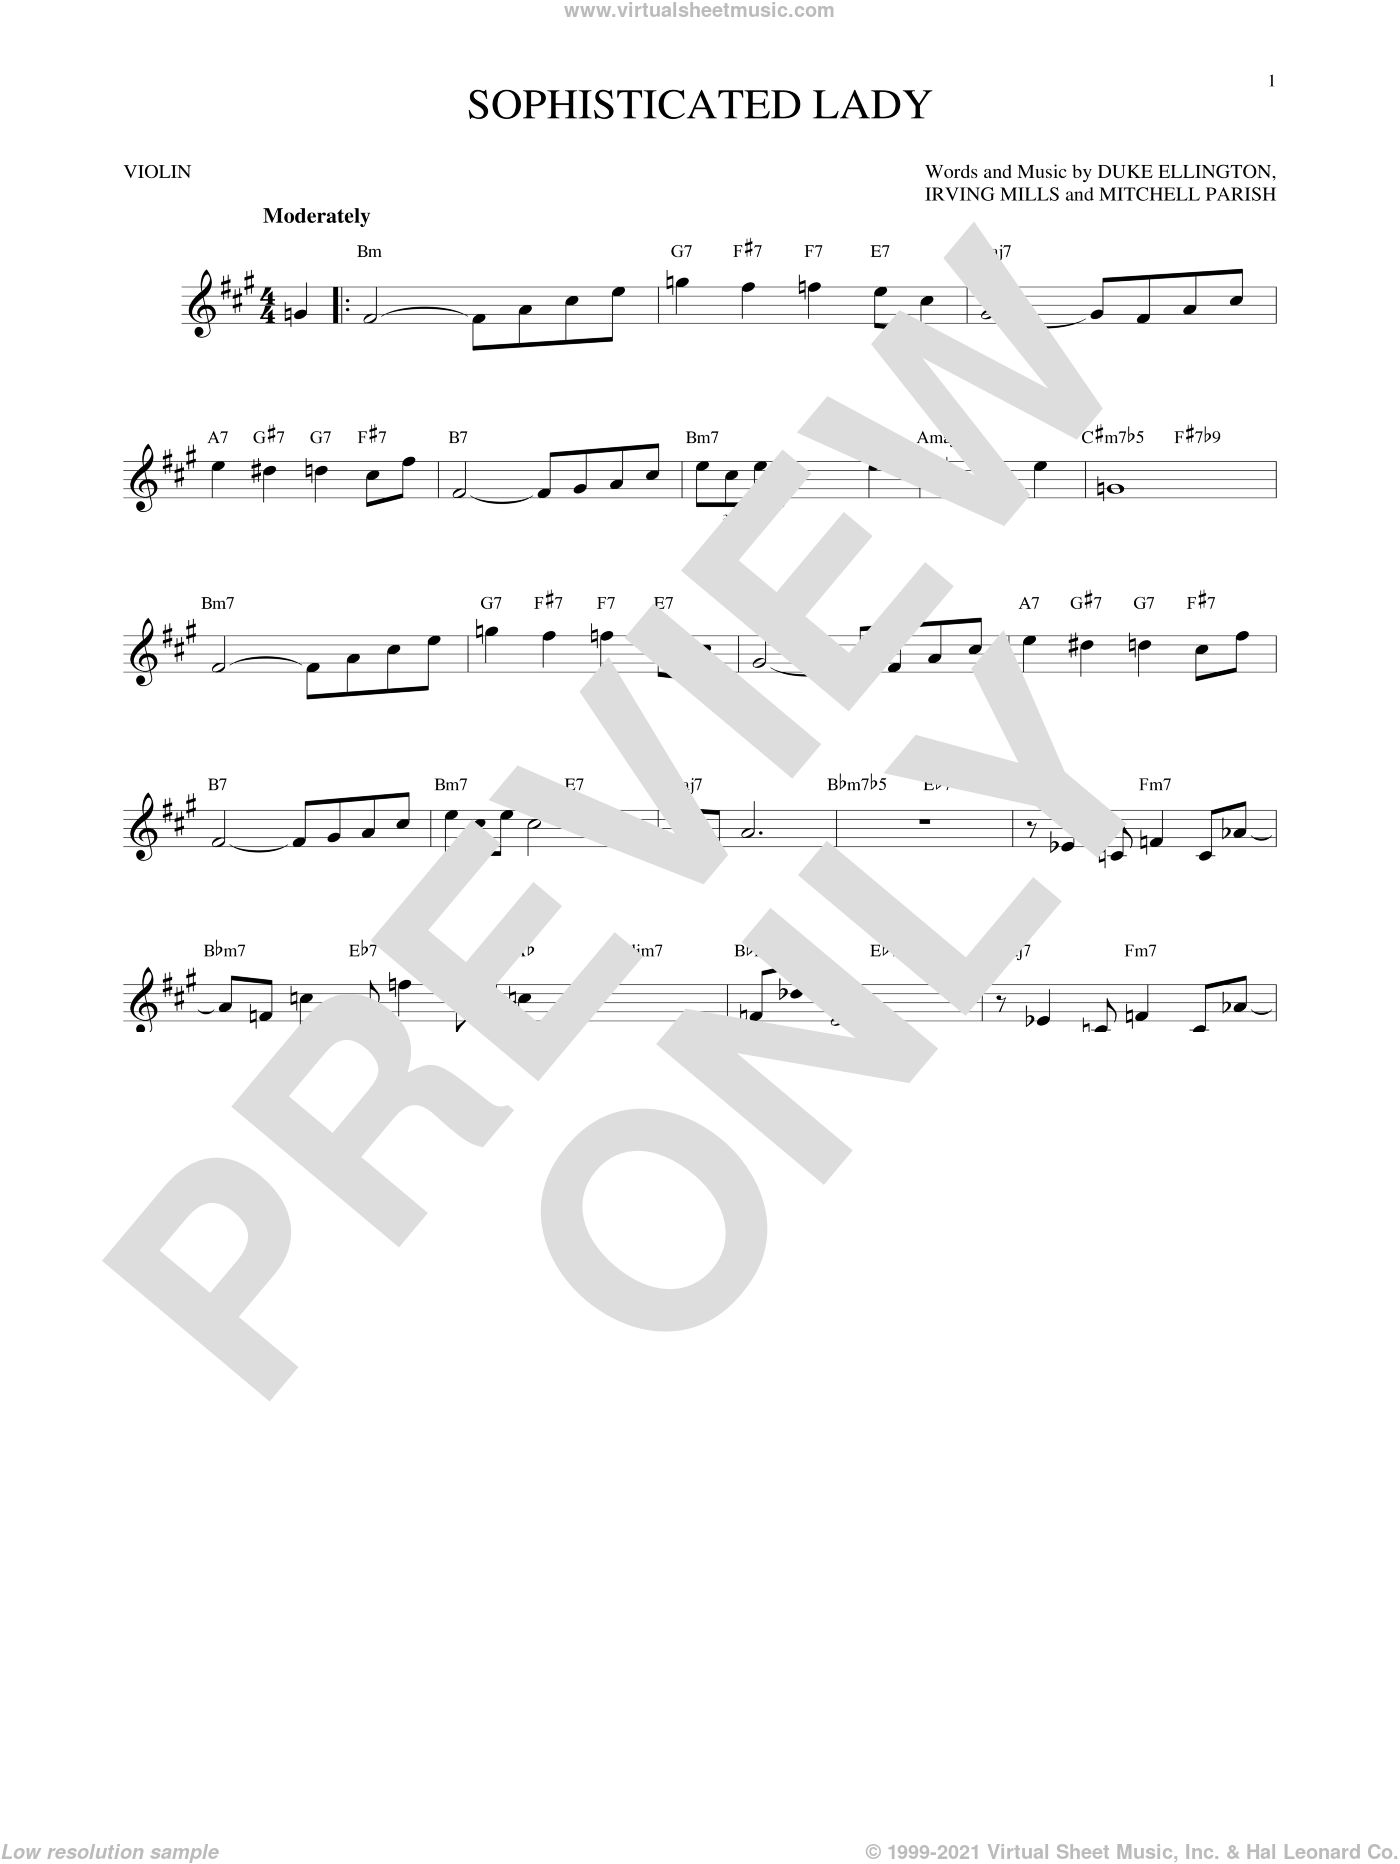 Sophisticated Lady sheet music for violin solo by Duke Ellington, Irving Mills and Mitchell Parish, intermediate skill level